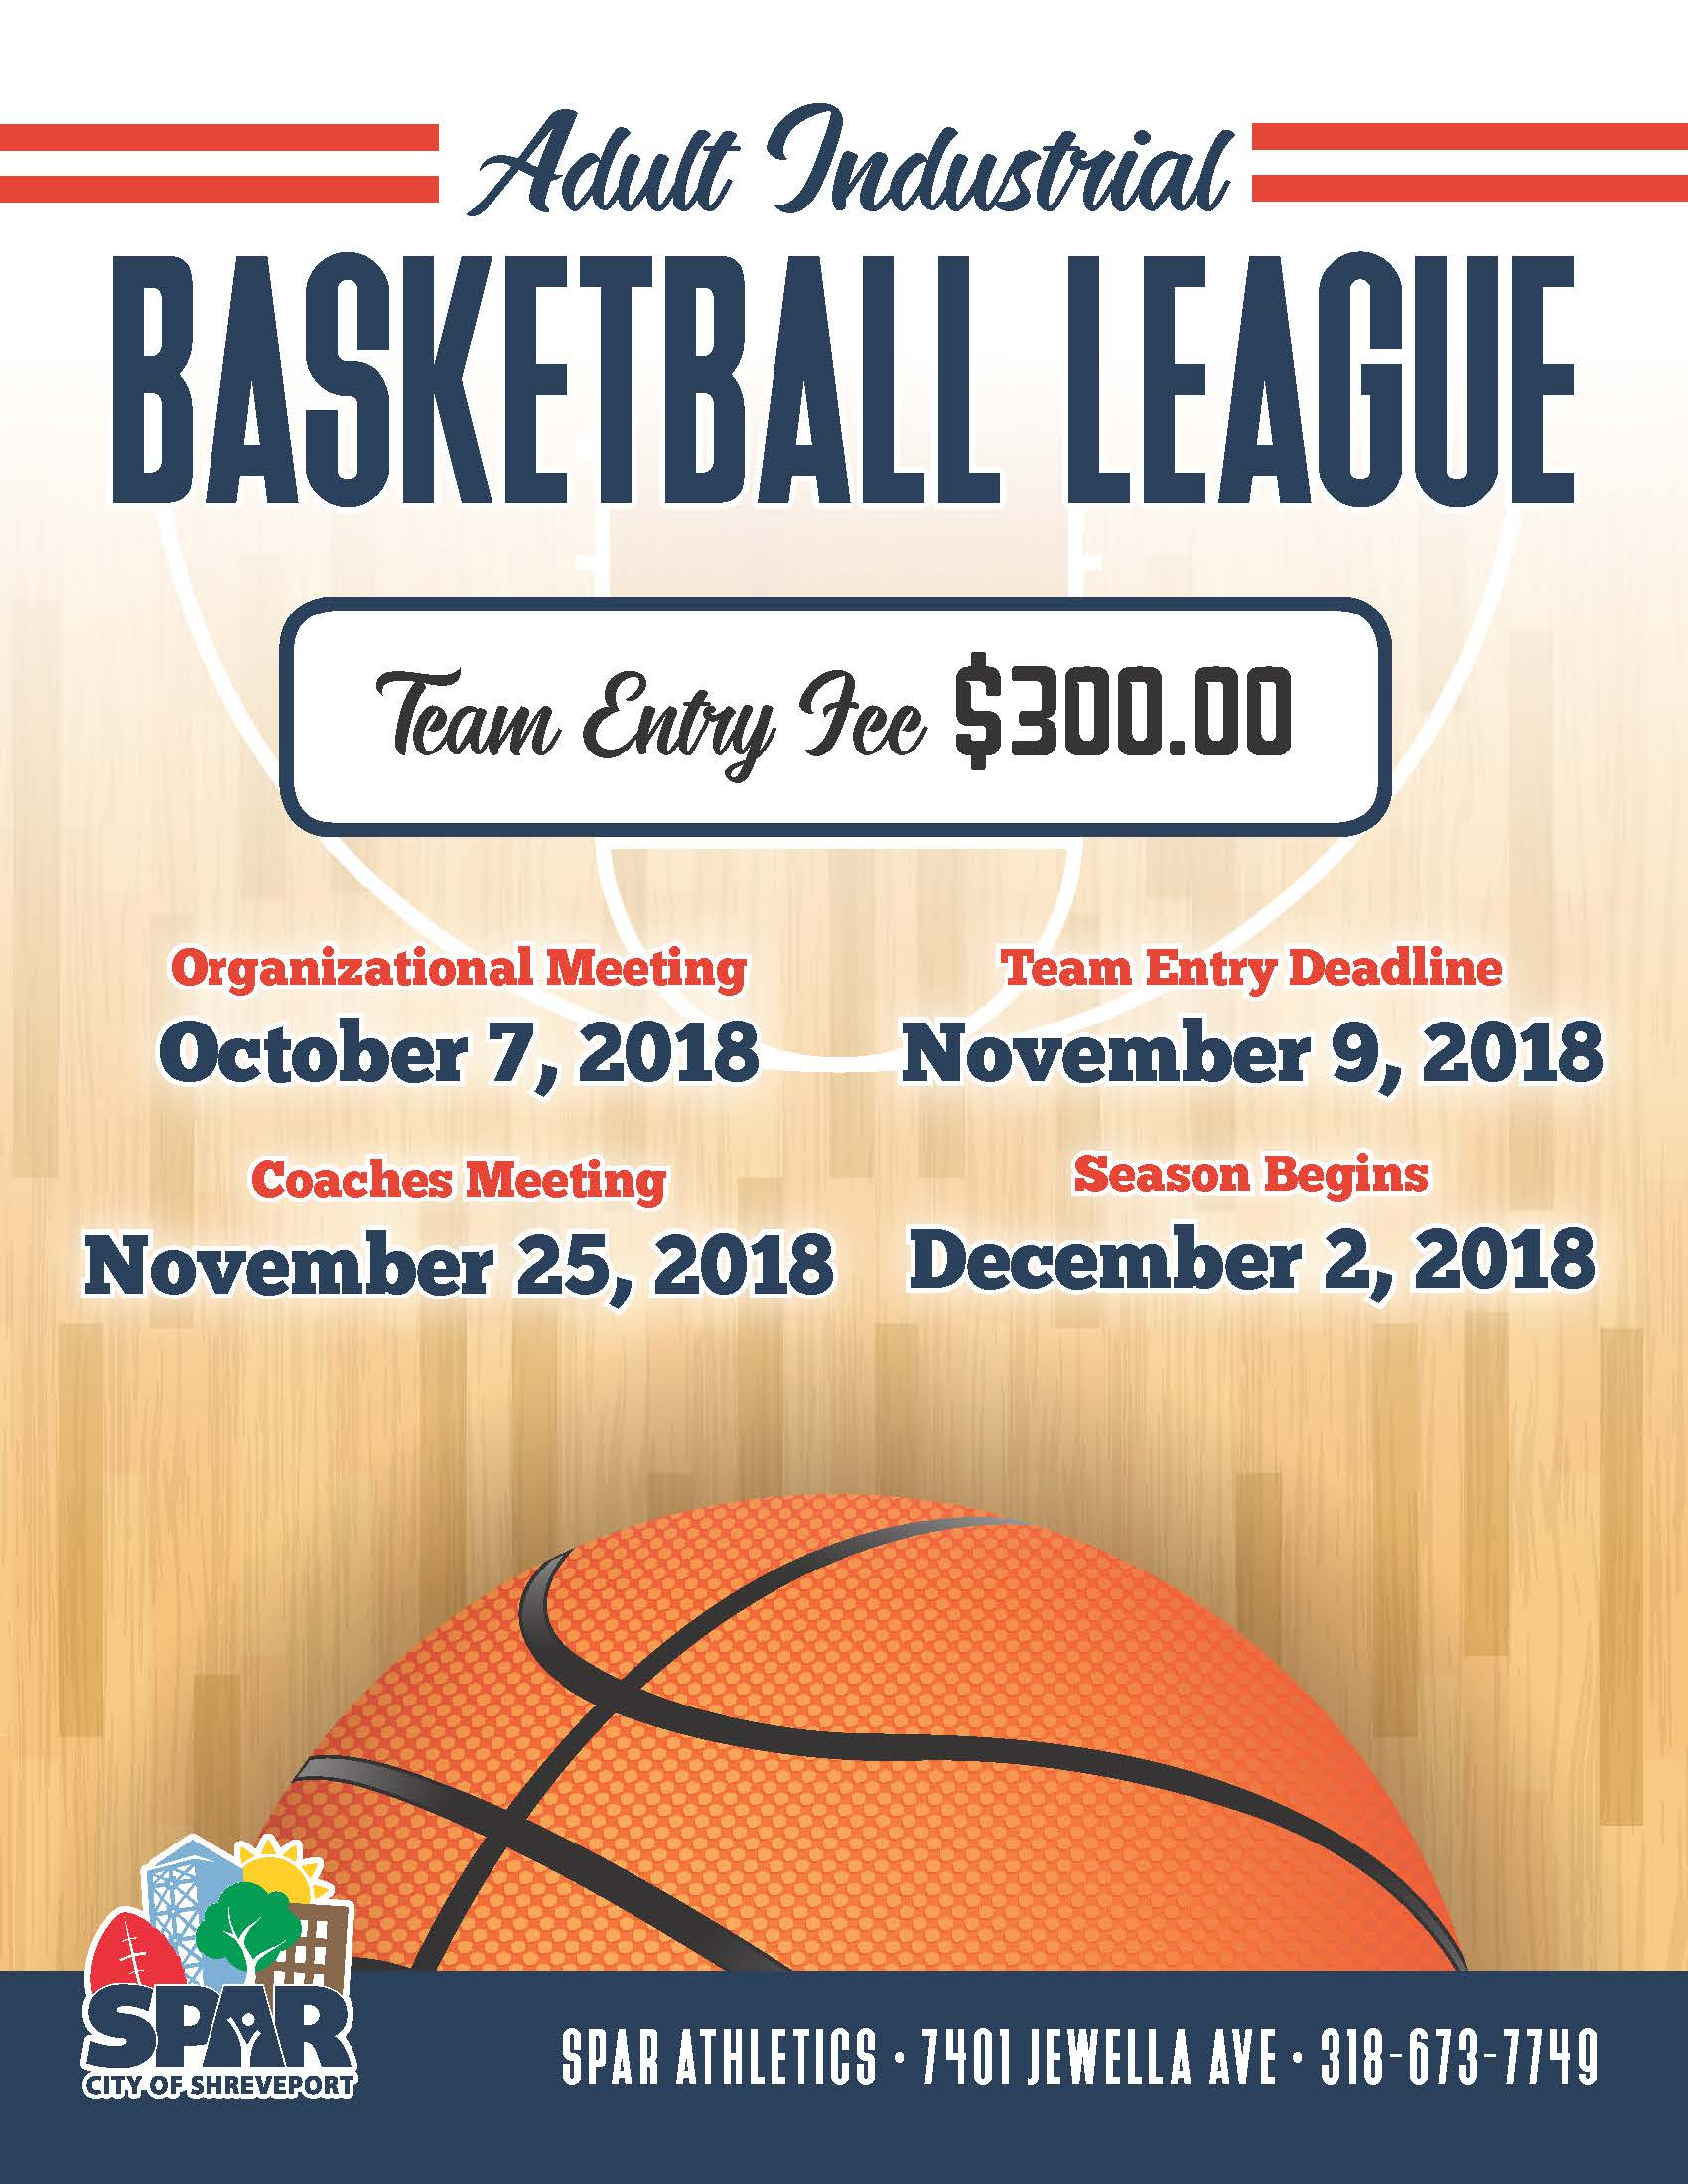 2018 SPAR Athletic - Adult Industrial Basketball League flyer